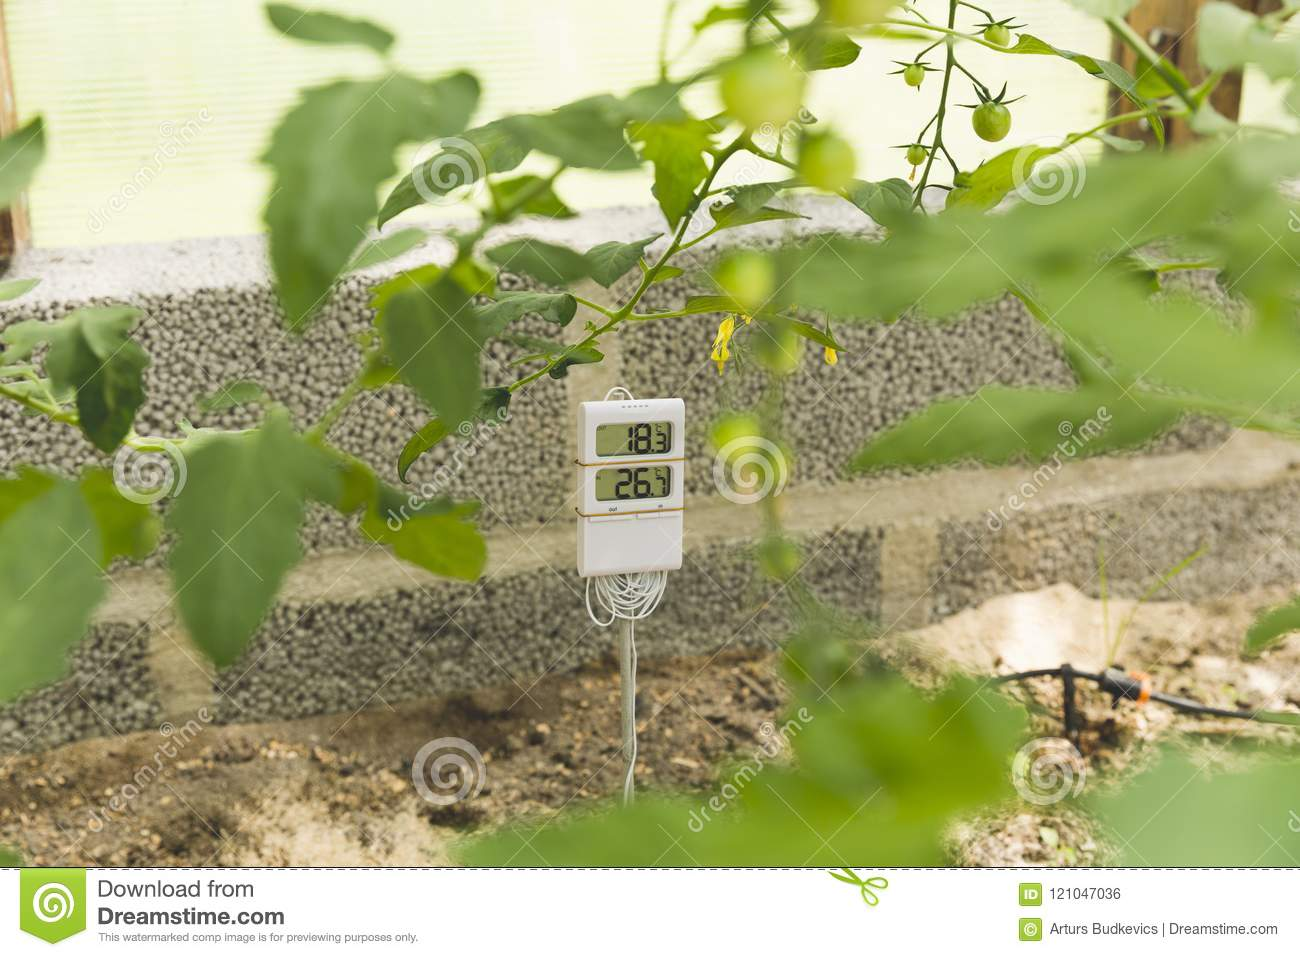 Measurement and control of temperature in the greenhouse